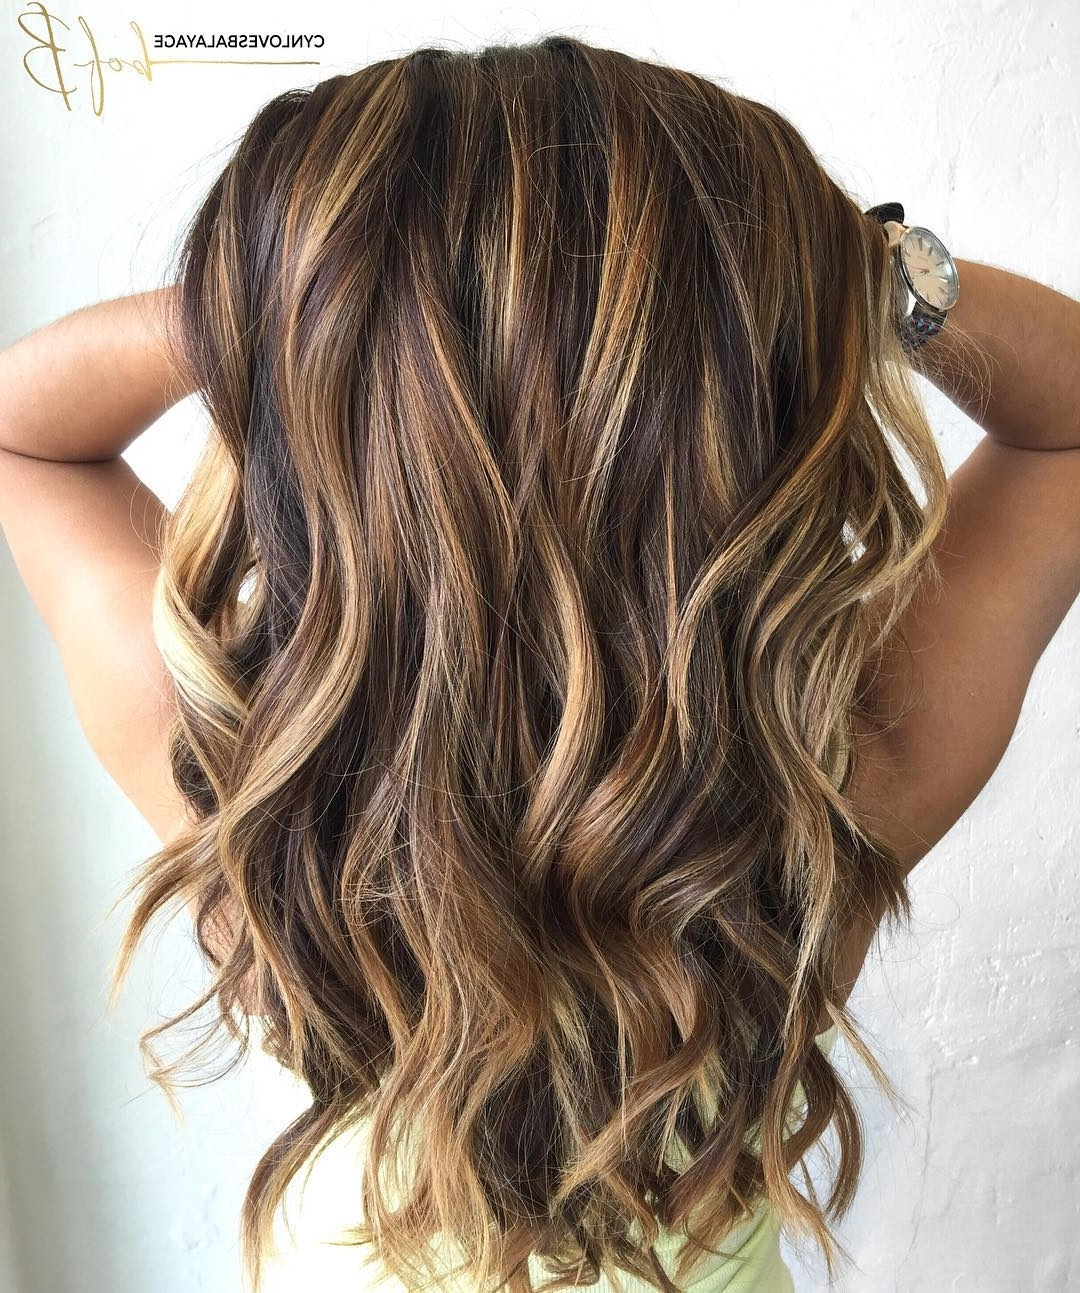 2017 Dirty Blonde Balayage Babylights Hairstyles Within 60 Looks With Caramel Highlights On Brown And Dark Brown Hair (View 13 of 20)